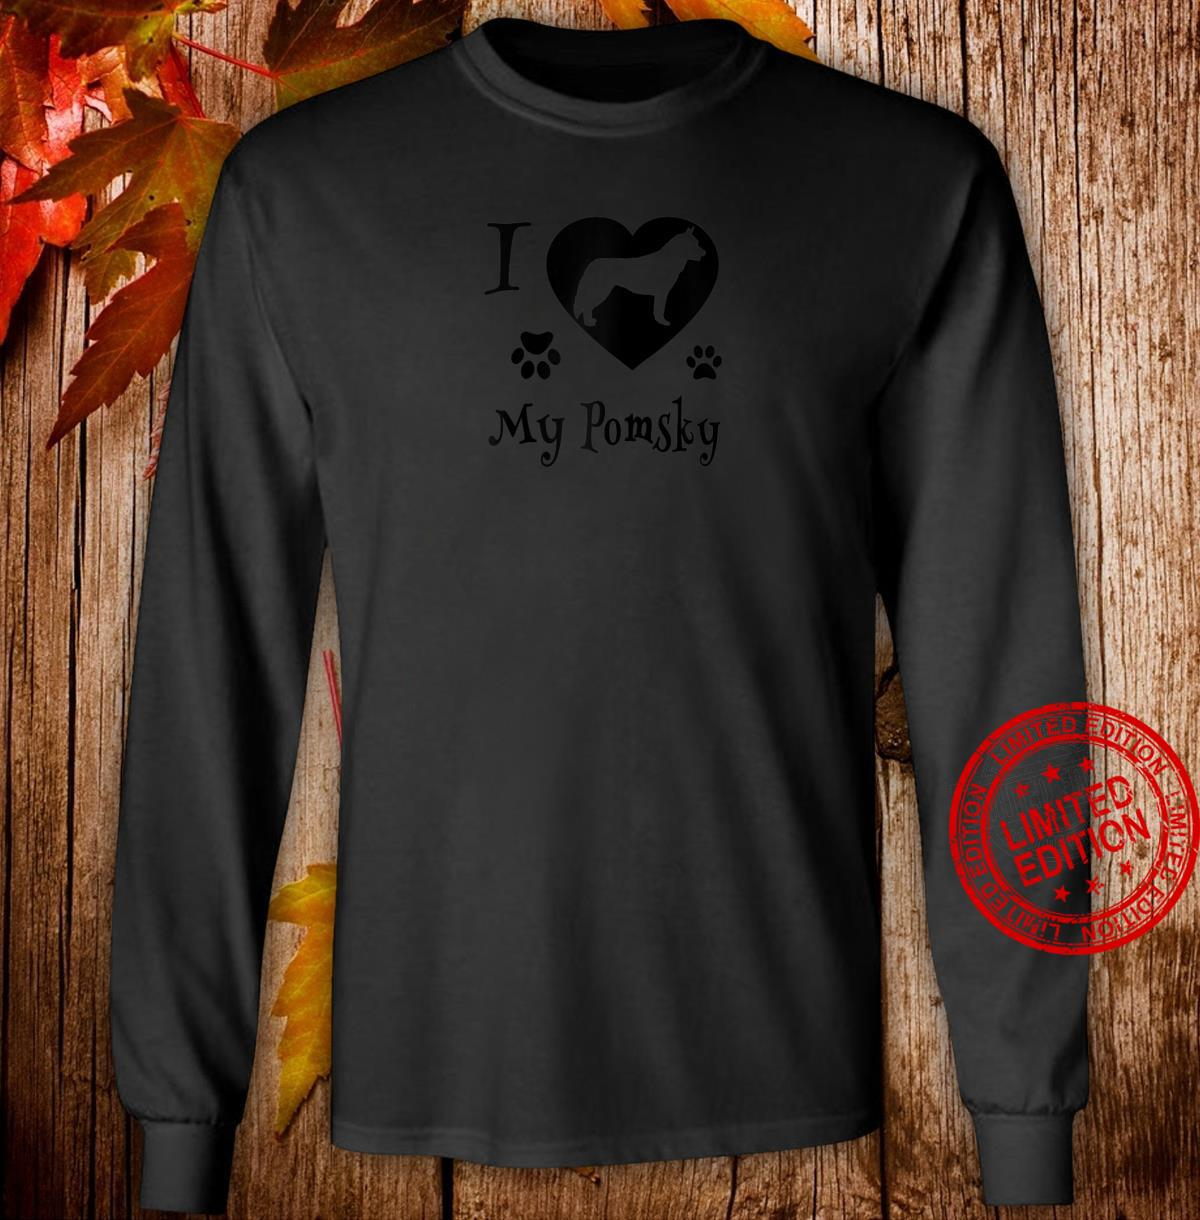 Pomsky Shirt Design for Pomsky Dogs Shirt long sleeved